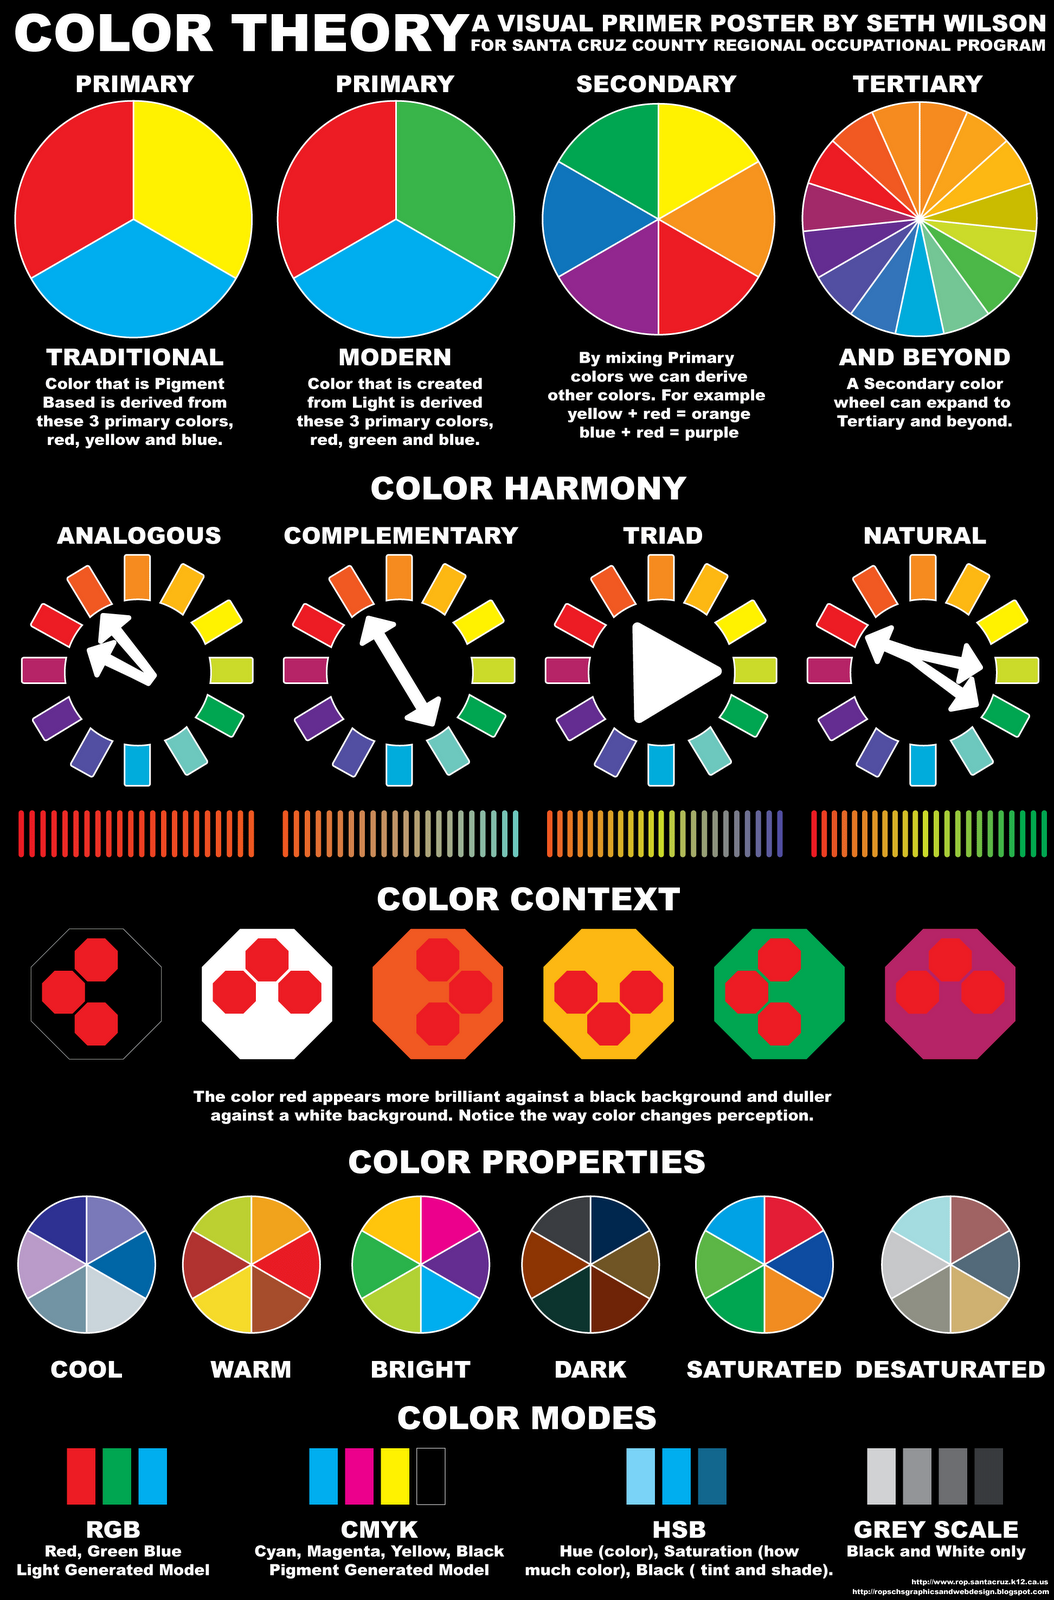 2 colour poster design - Educational Poster Designs By Seth Wilson Color Theory Poster A